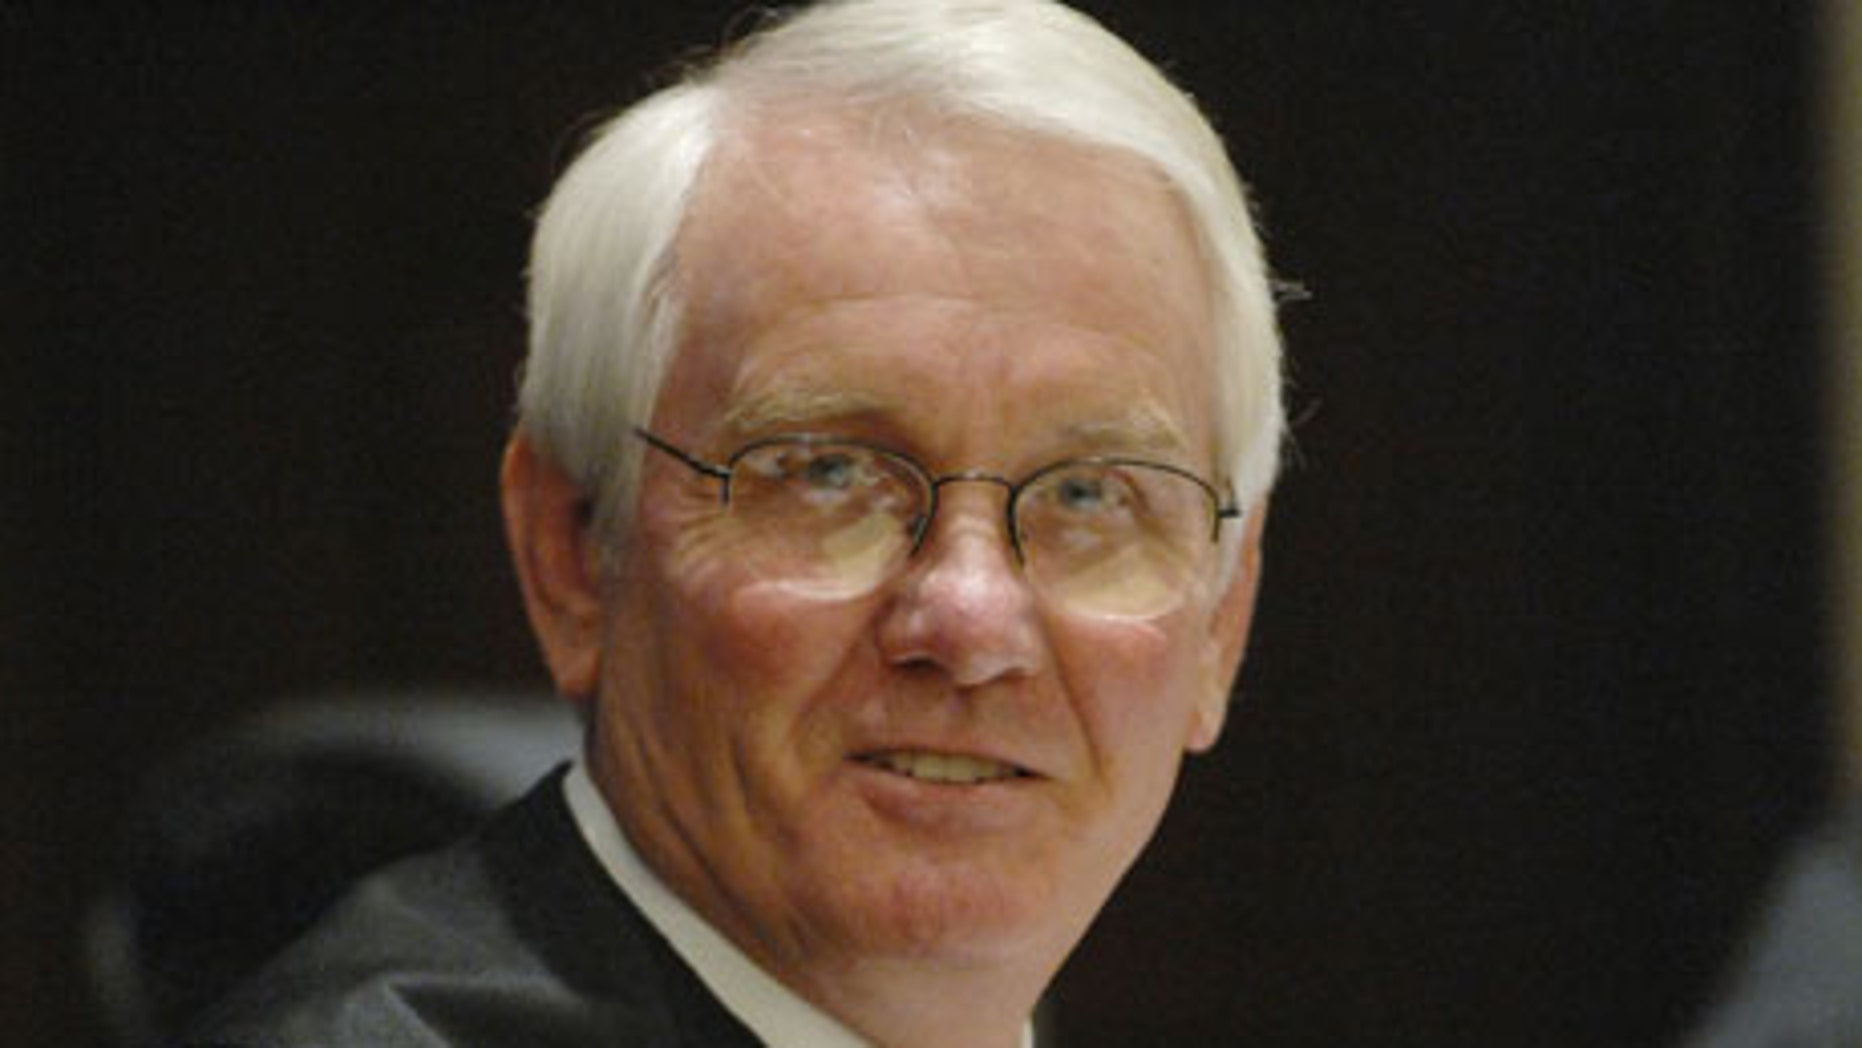 Florida District Court Judge Roger Vinson